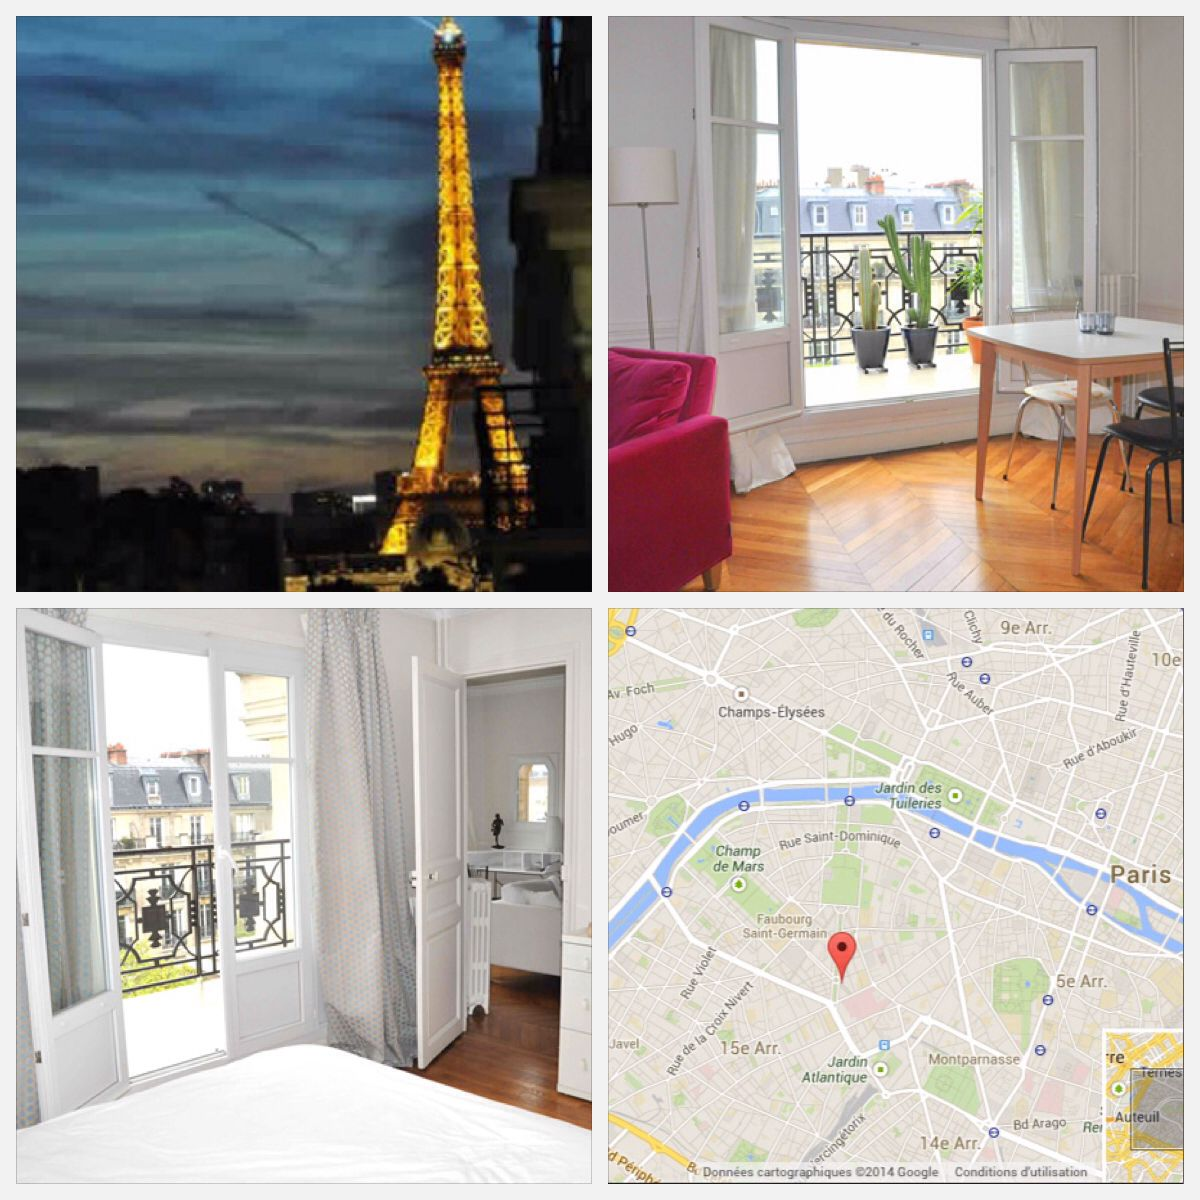 http://www.short-rent-paris-flat.com/vacation-rentals-by-trocaderoeiffel-tower/1-bedroom-apartment/luxury-one-bedroom-apartment-on-avenue-de-saxe-with-eiffel-tower-view/